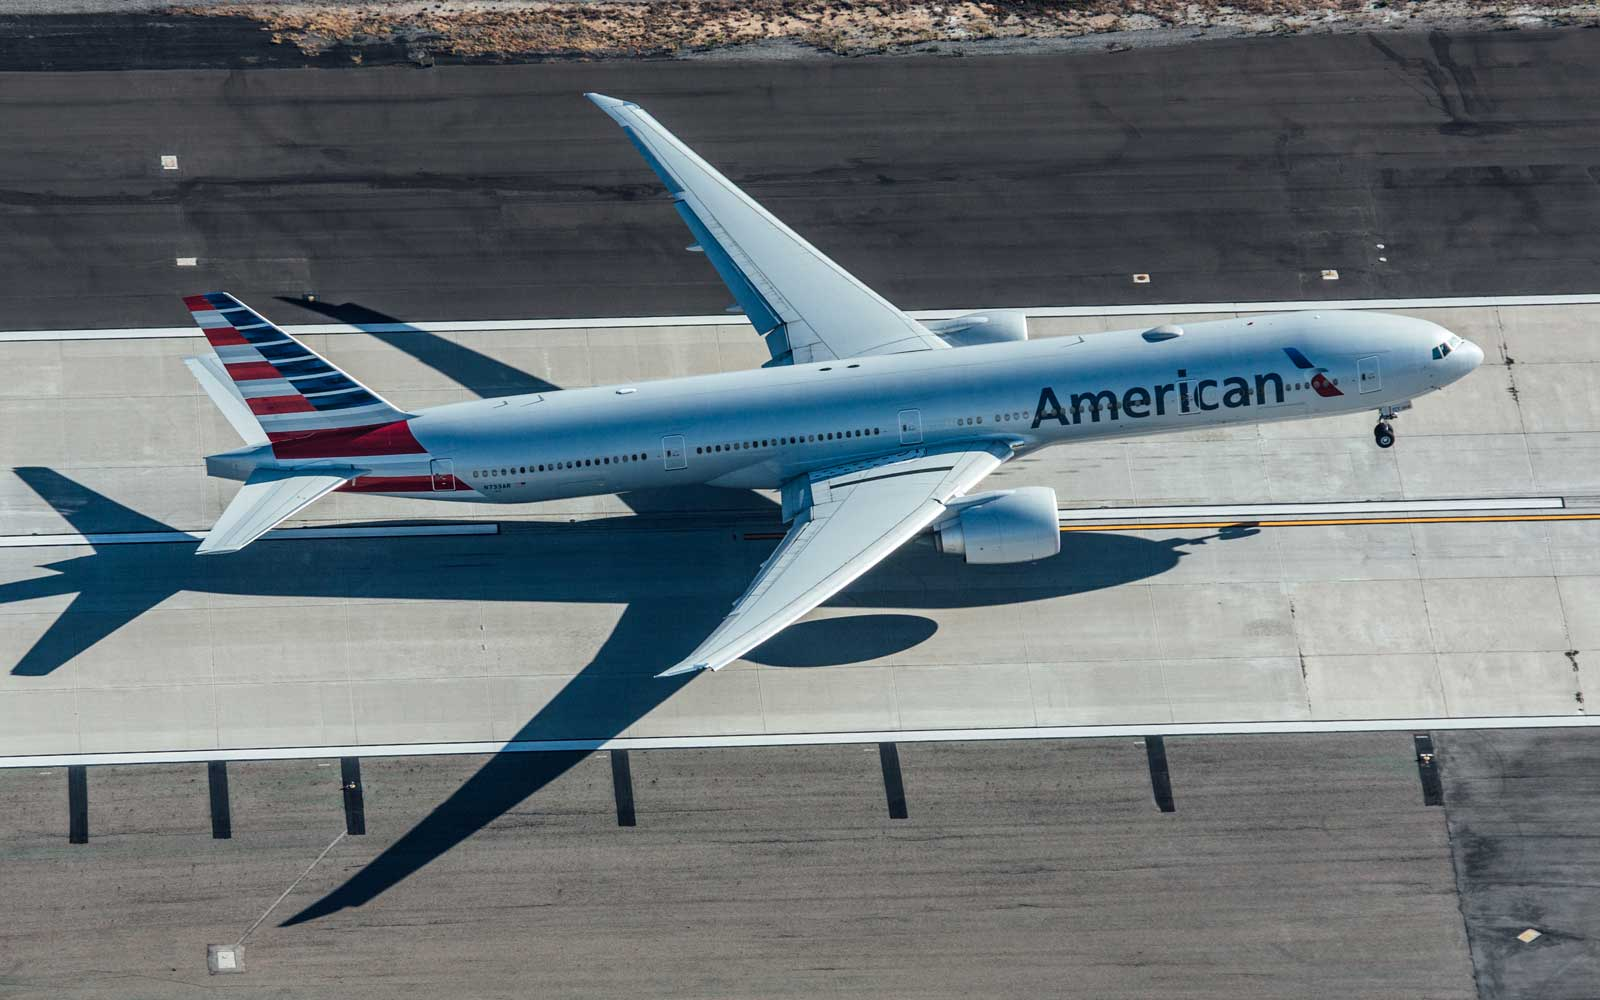 American Airlines Is Adding Basic Economy to Flights to